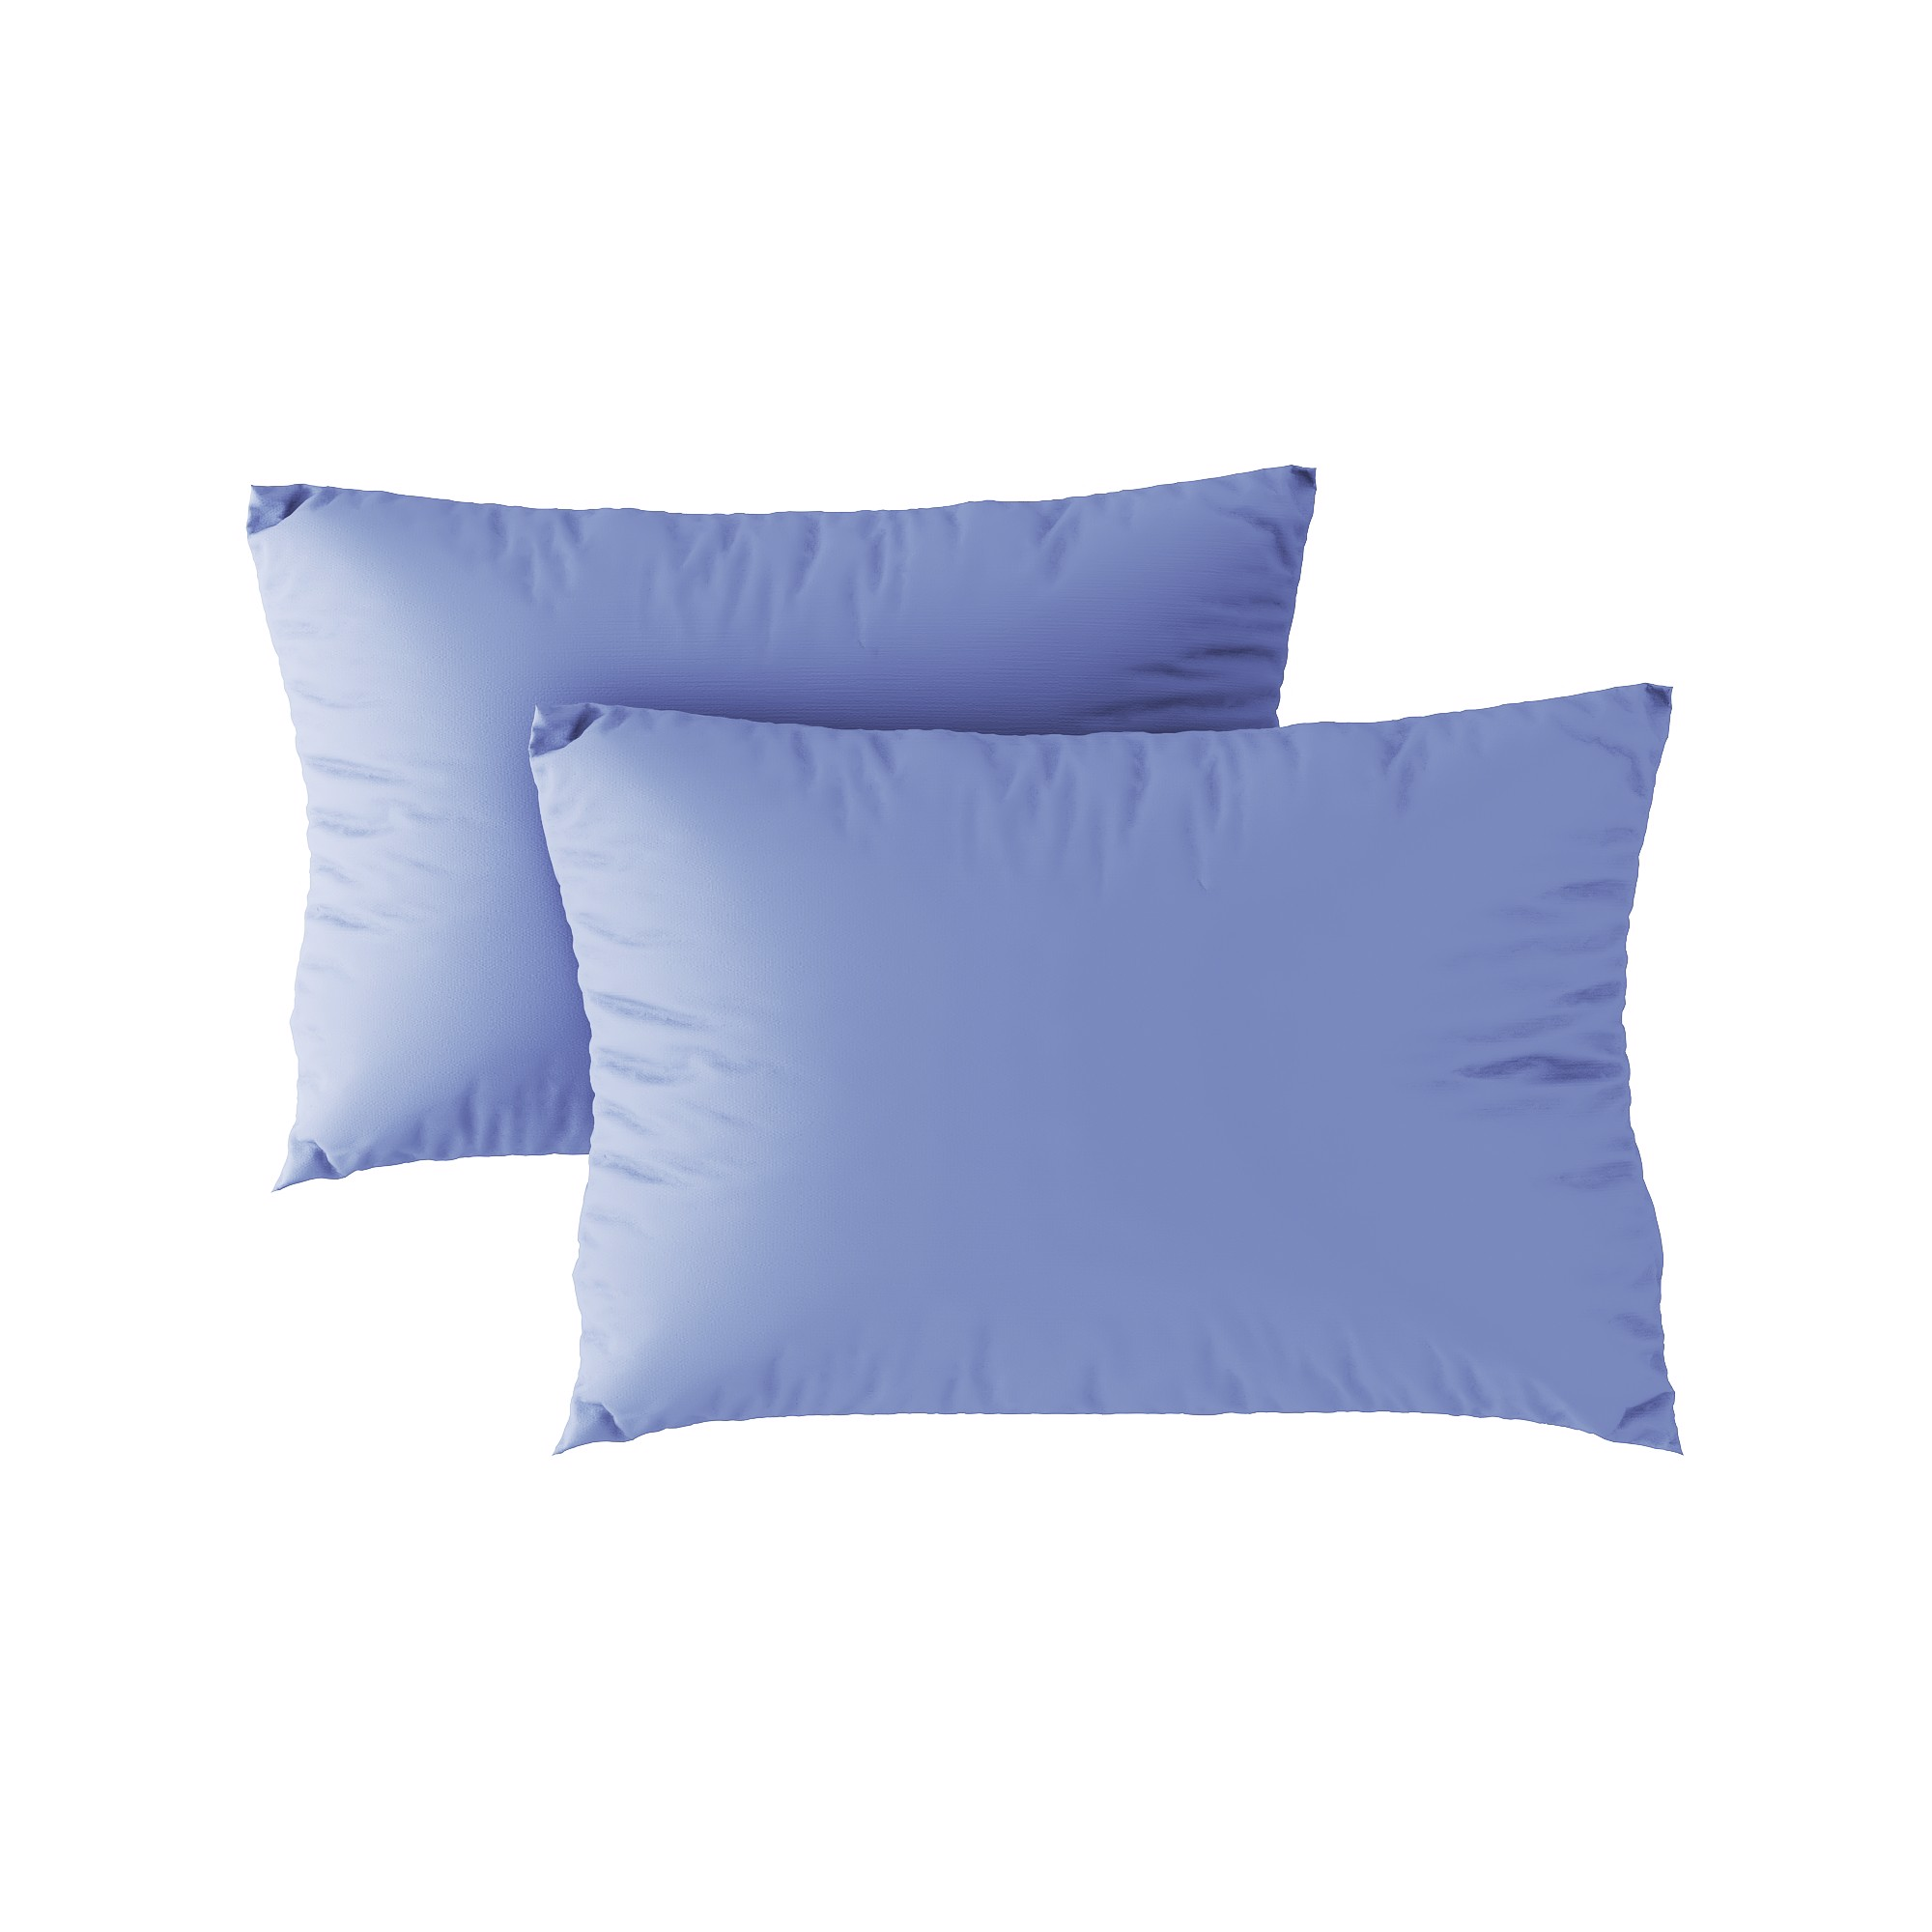 Standard pillow case 11 Grey blue (2pcs)